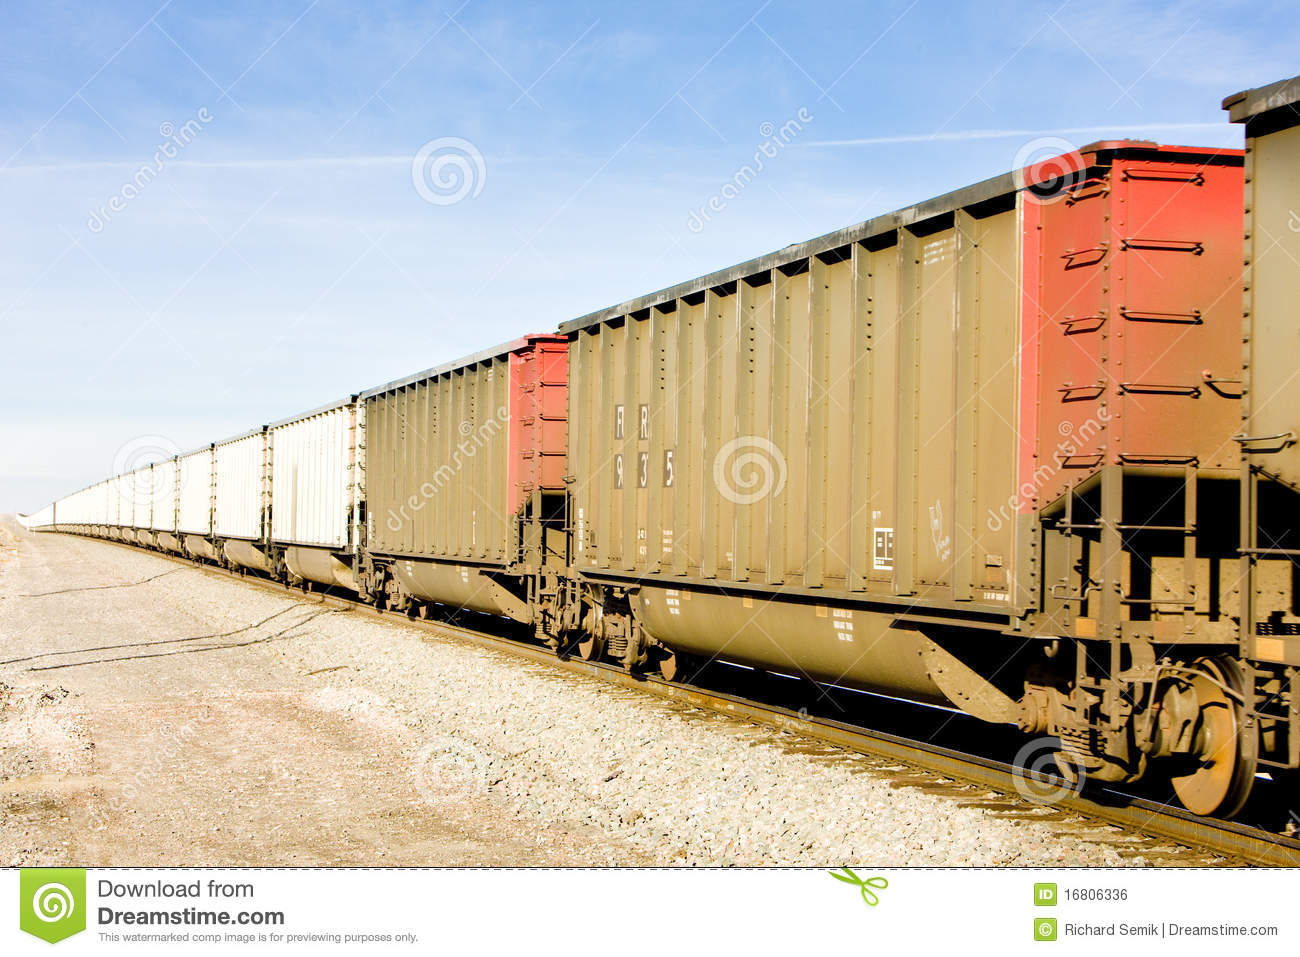 Freight Train Royalty Free Stock Image.